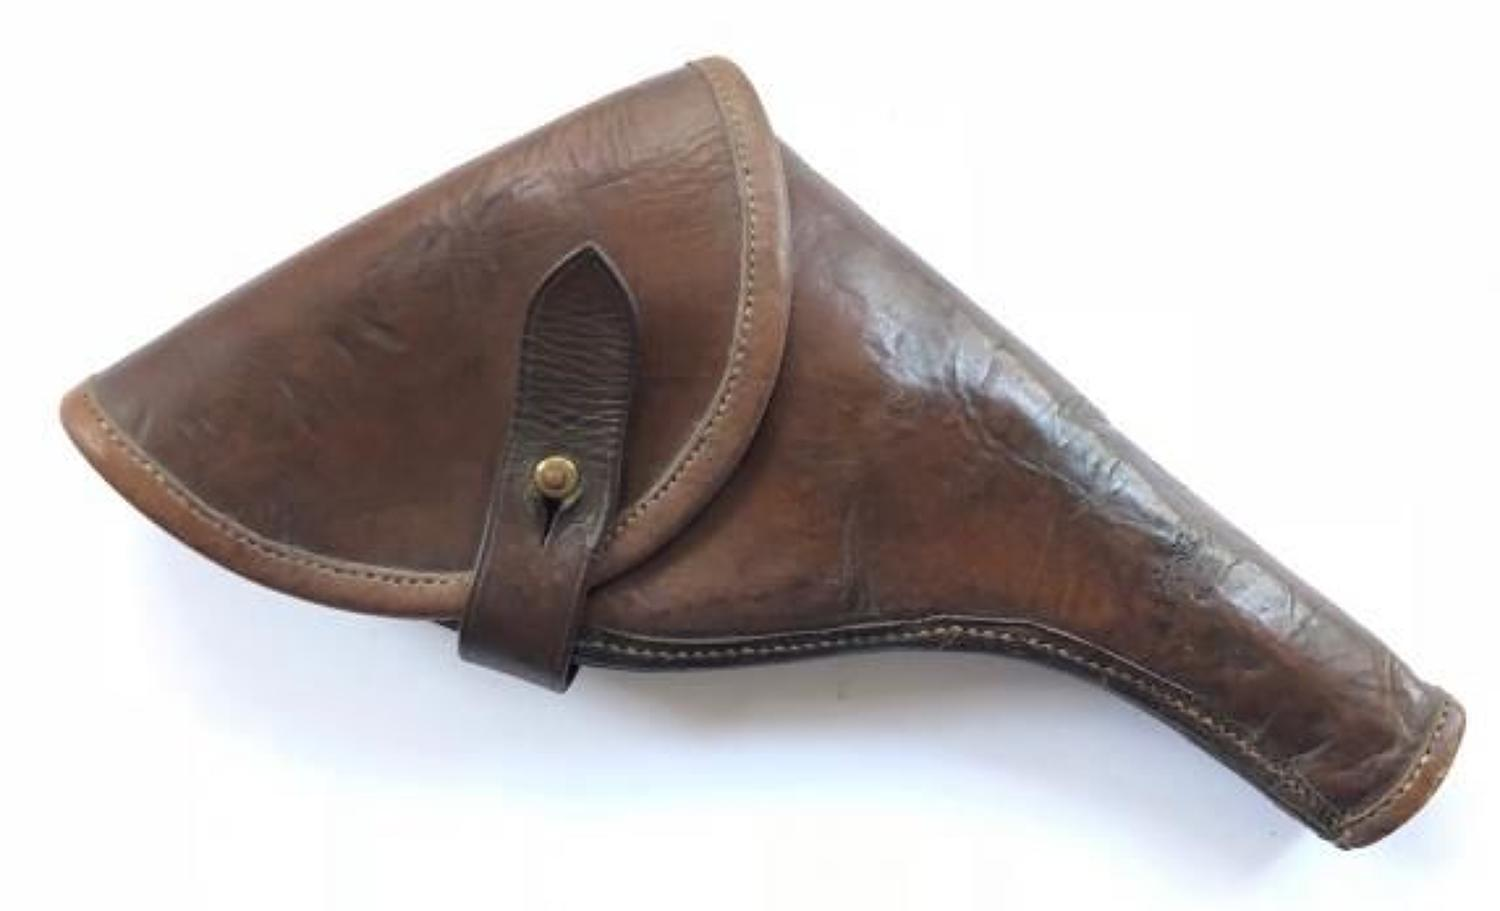 Boer War / WW1 Period Officer's Leather Holster.